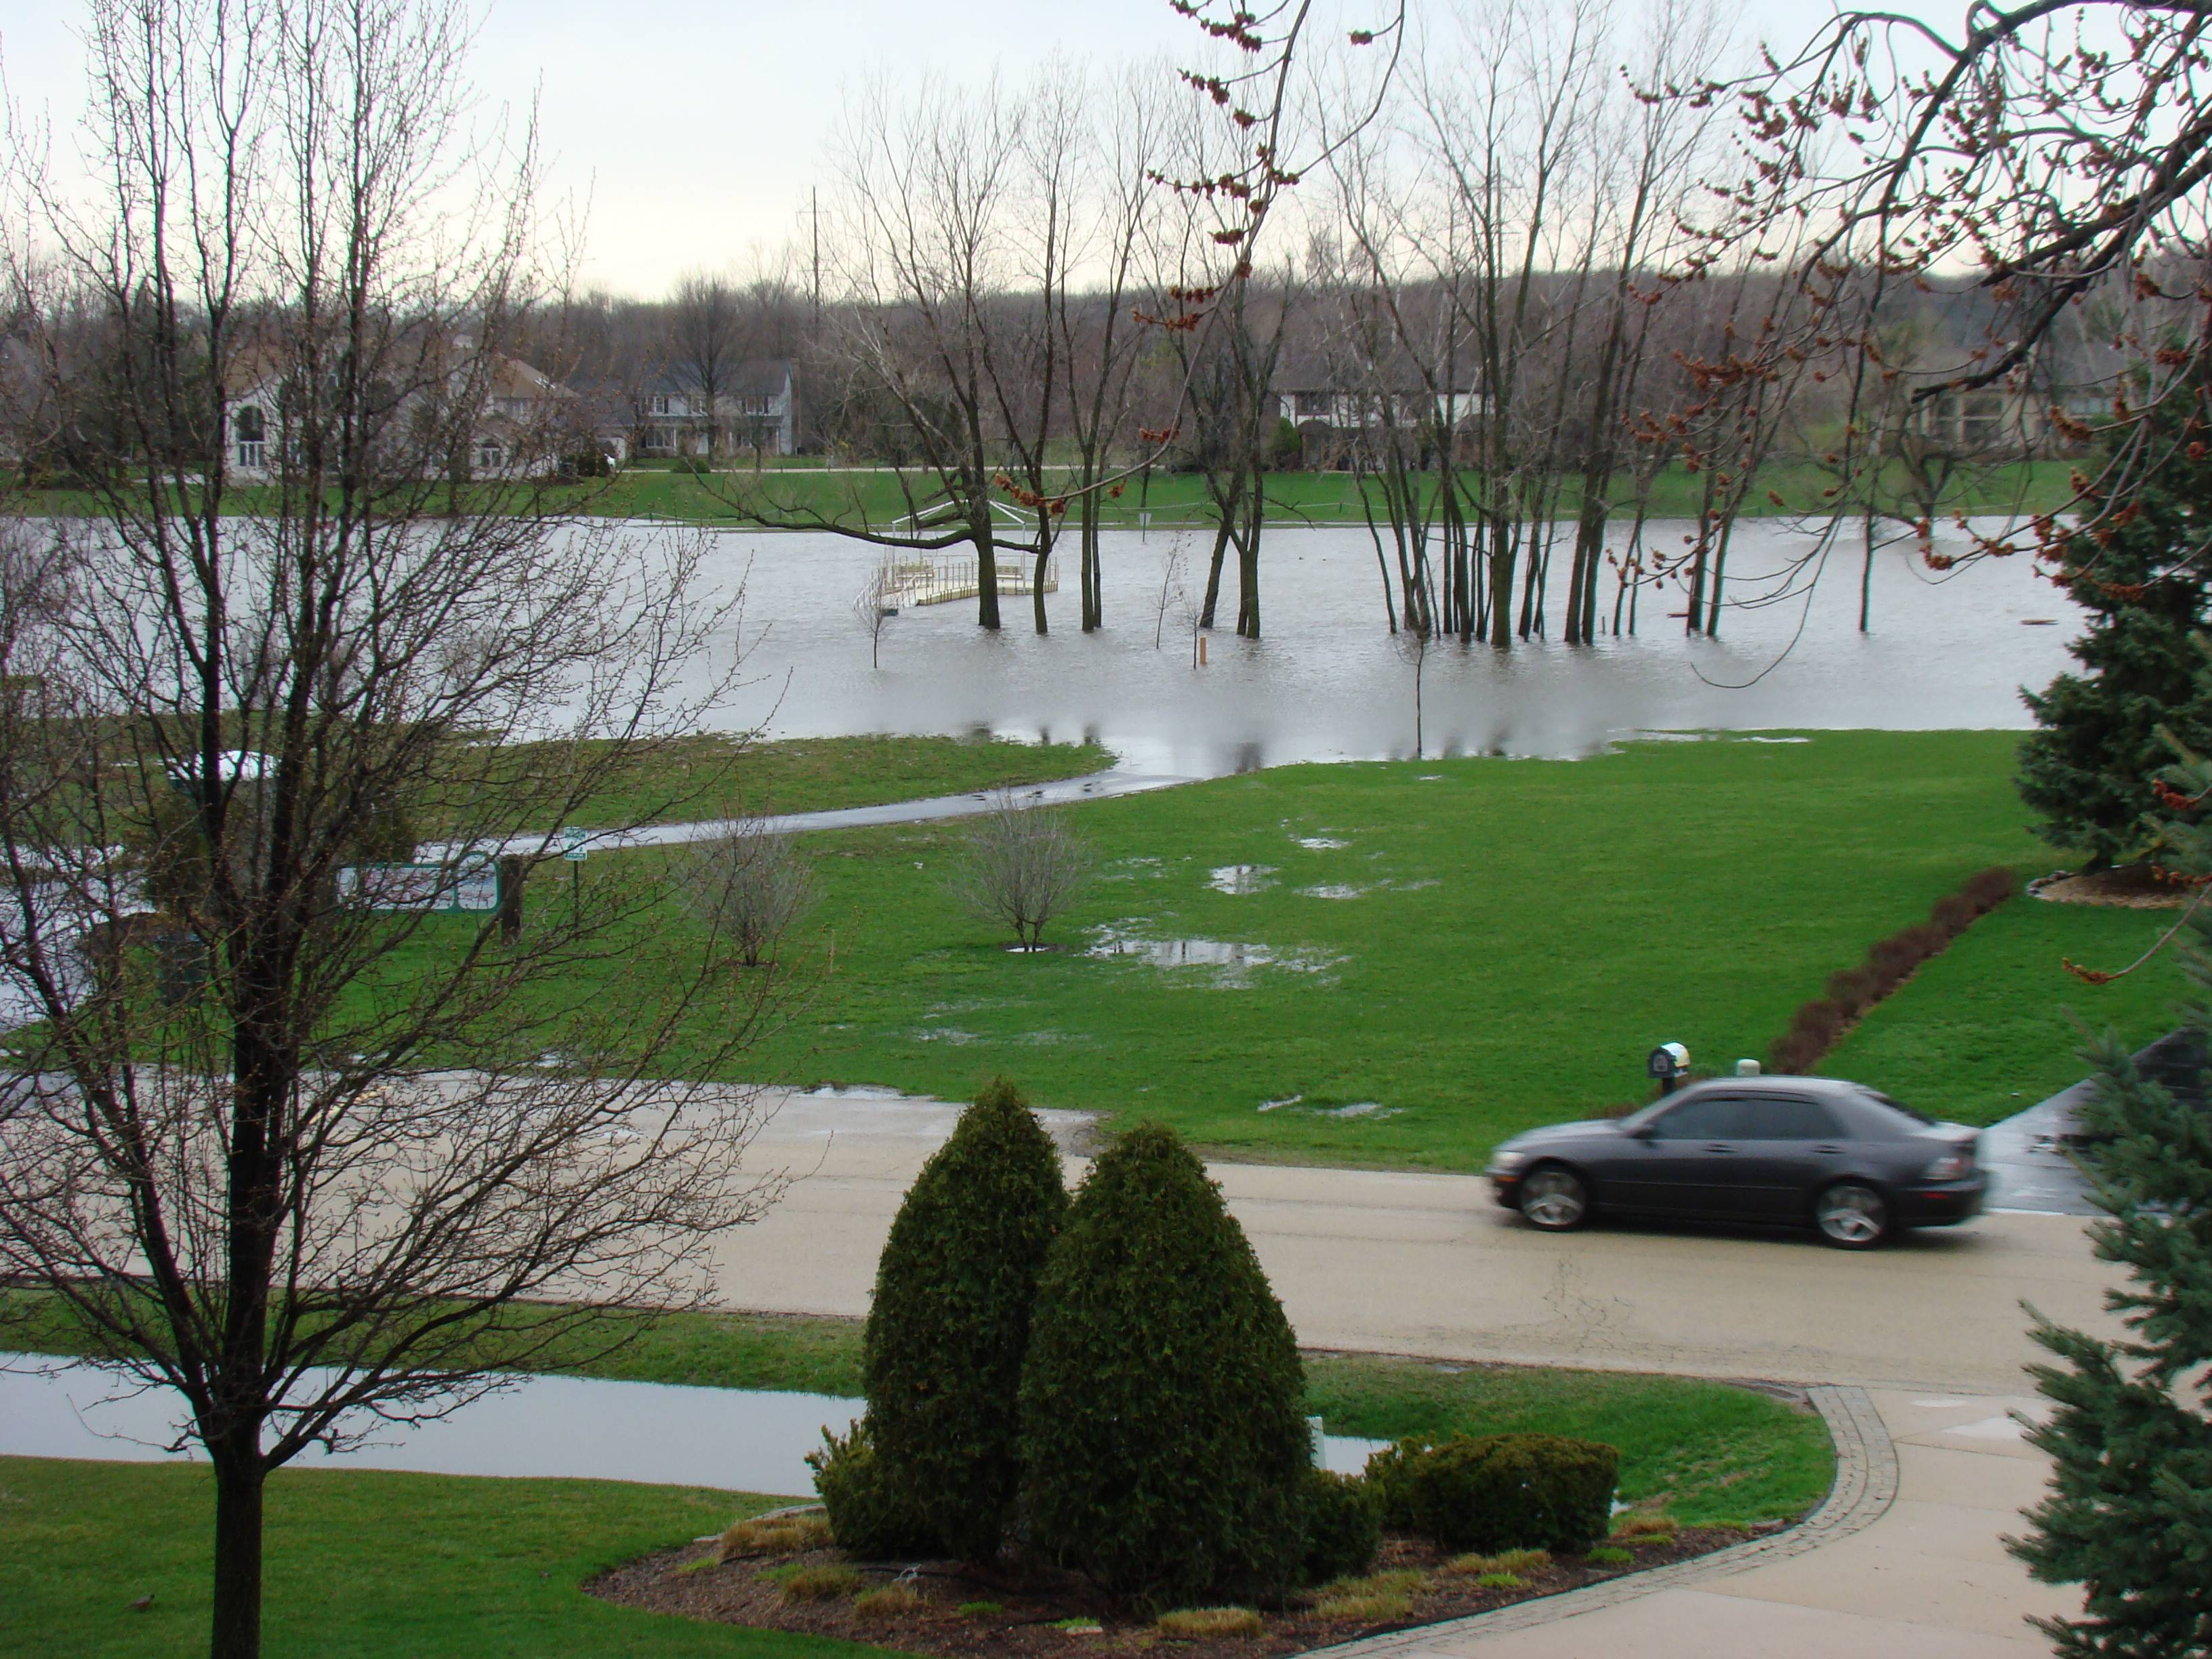 The DuPage River overflows its banks and spills into Centennial Beach in Naperville.